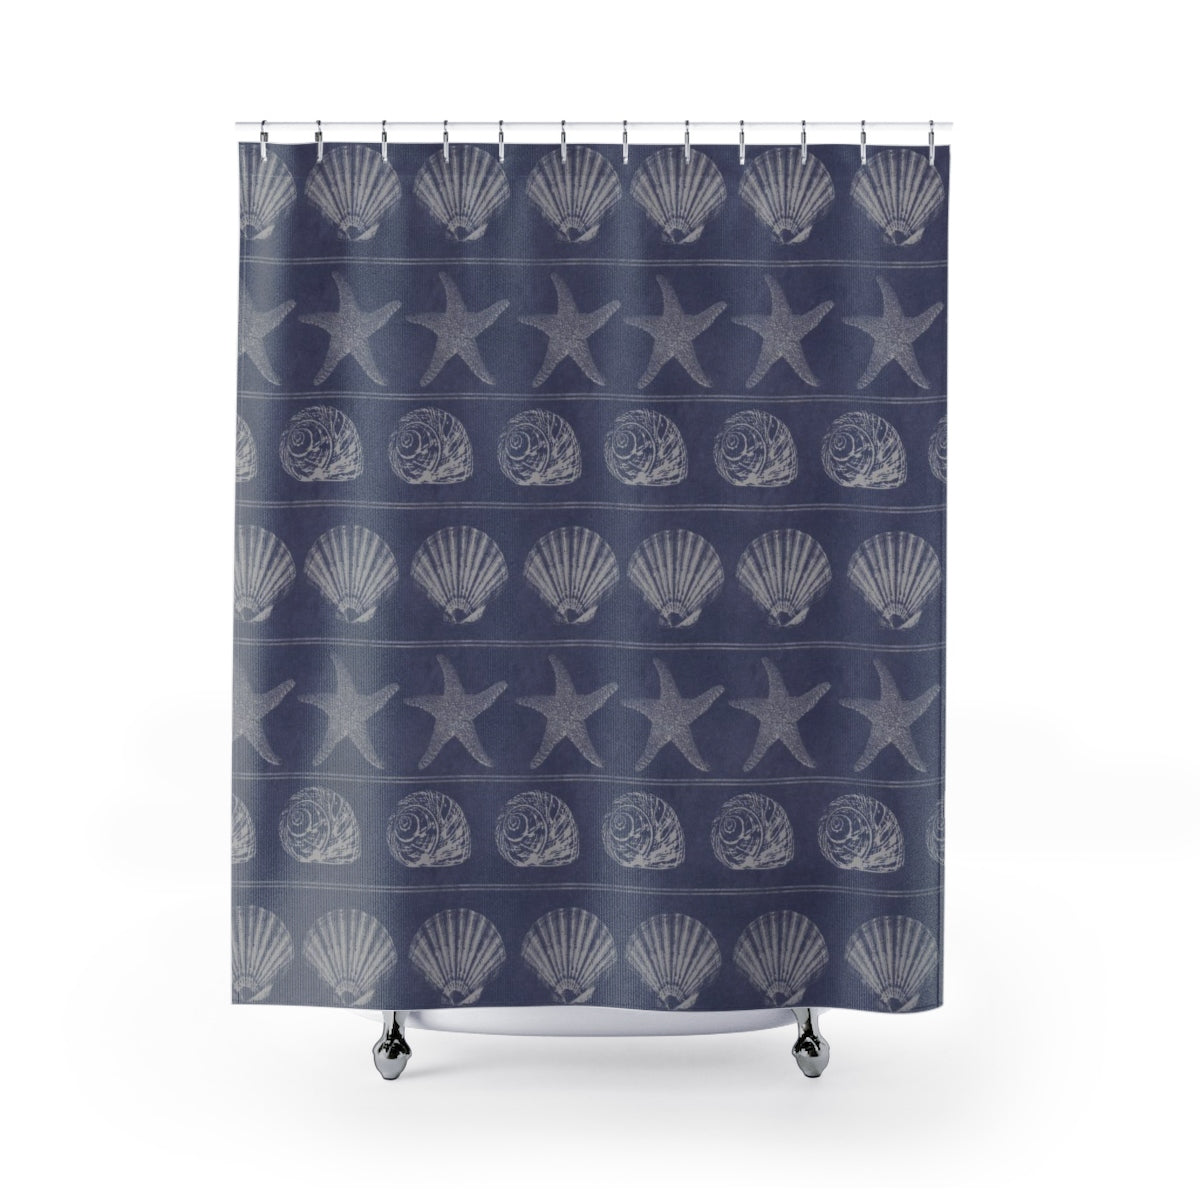 Periwinkle and Beige Shells Shower Curtain for Beach Bathroom - Metro Shower Curtains